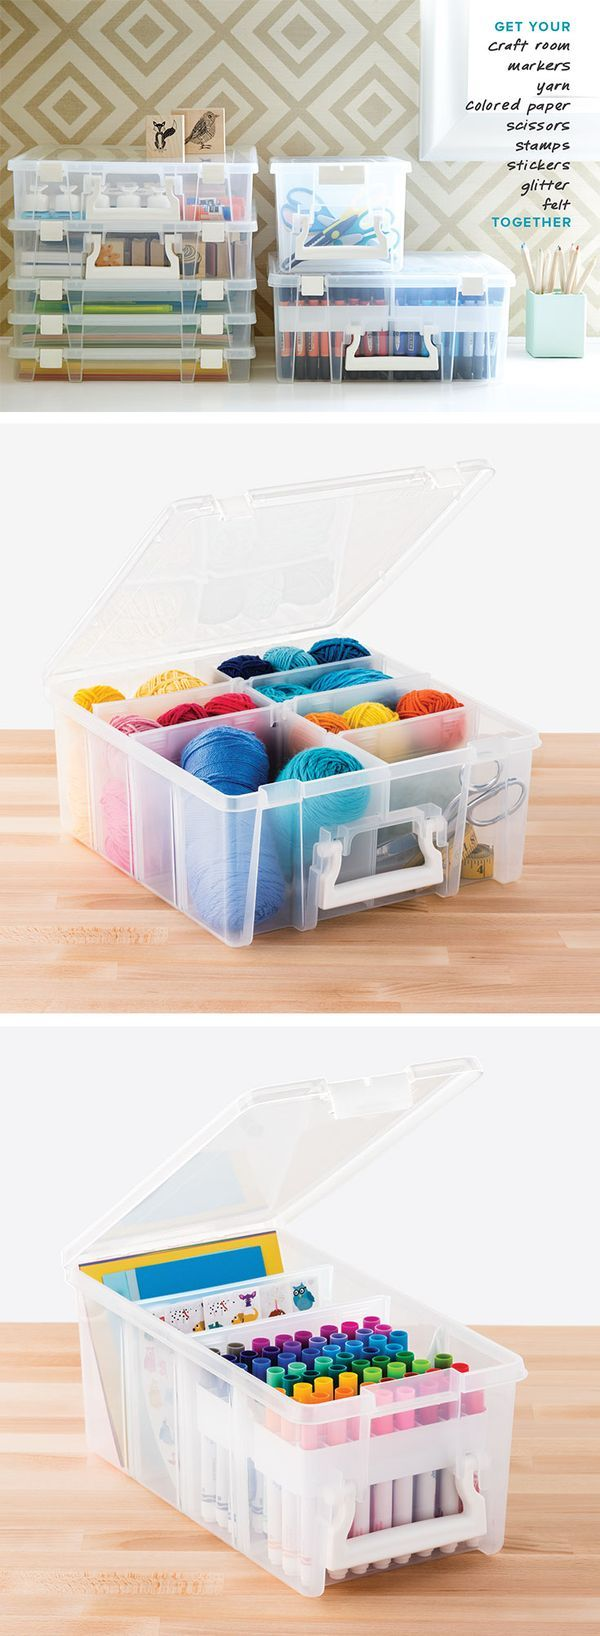 Calling all perfectionists! Our ArtBin Super Satchel Collection is the ideal way to organize all your craft and art supplies.